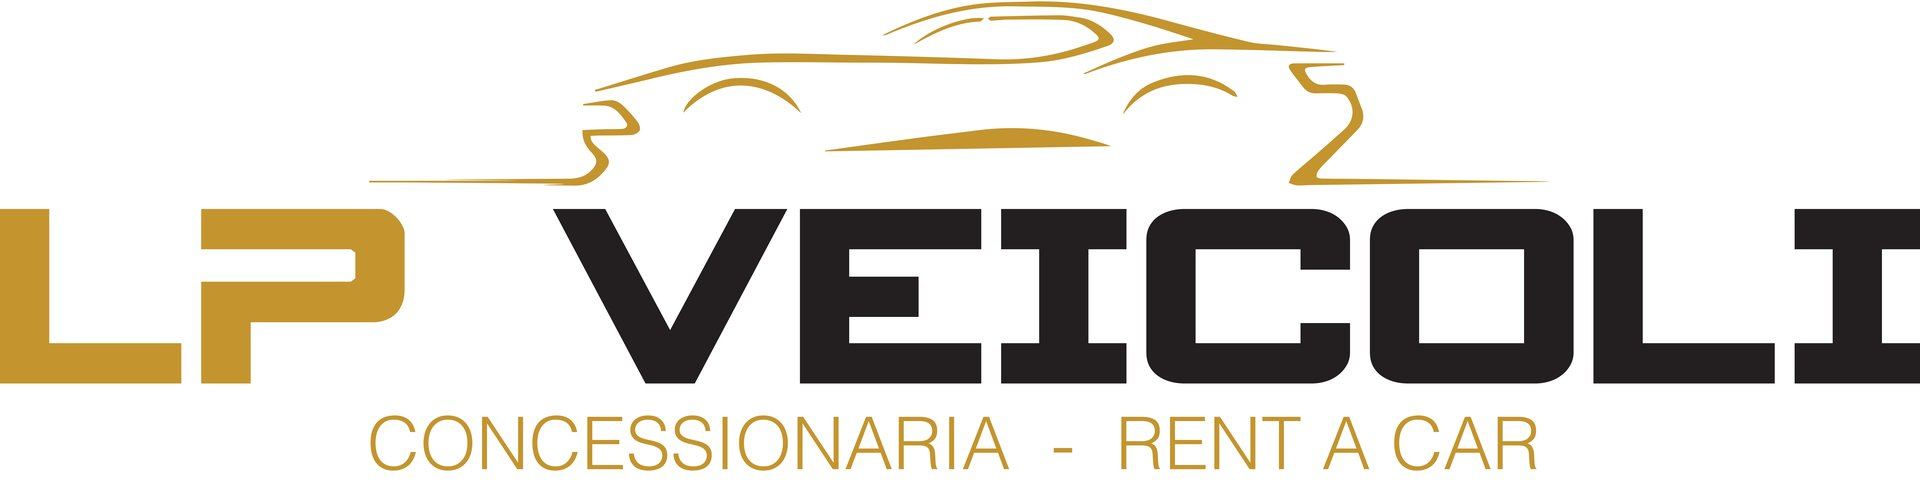 LP VEICOLI RENT A CAR - LOGO